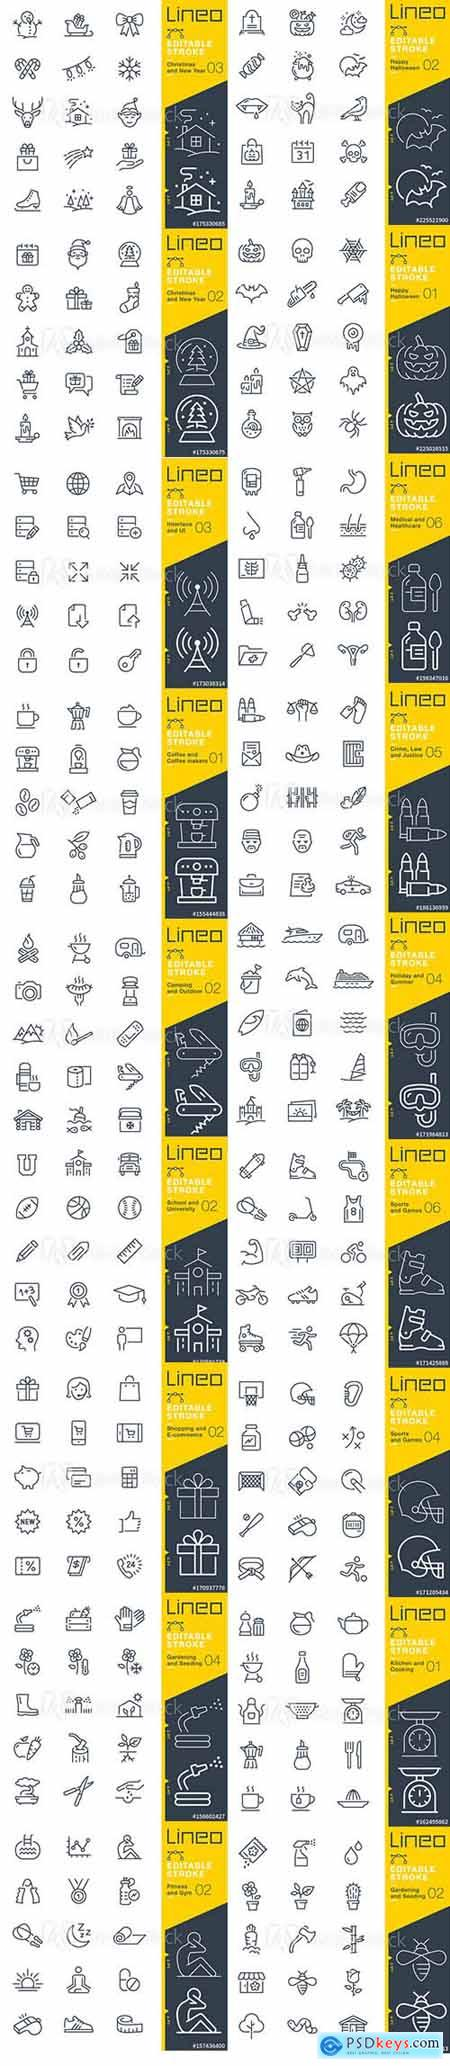 Vector Set - Outline Icons Pack Lineo Vol 3